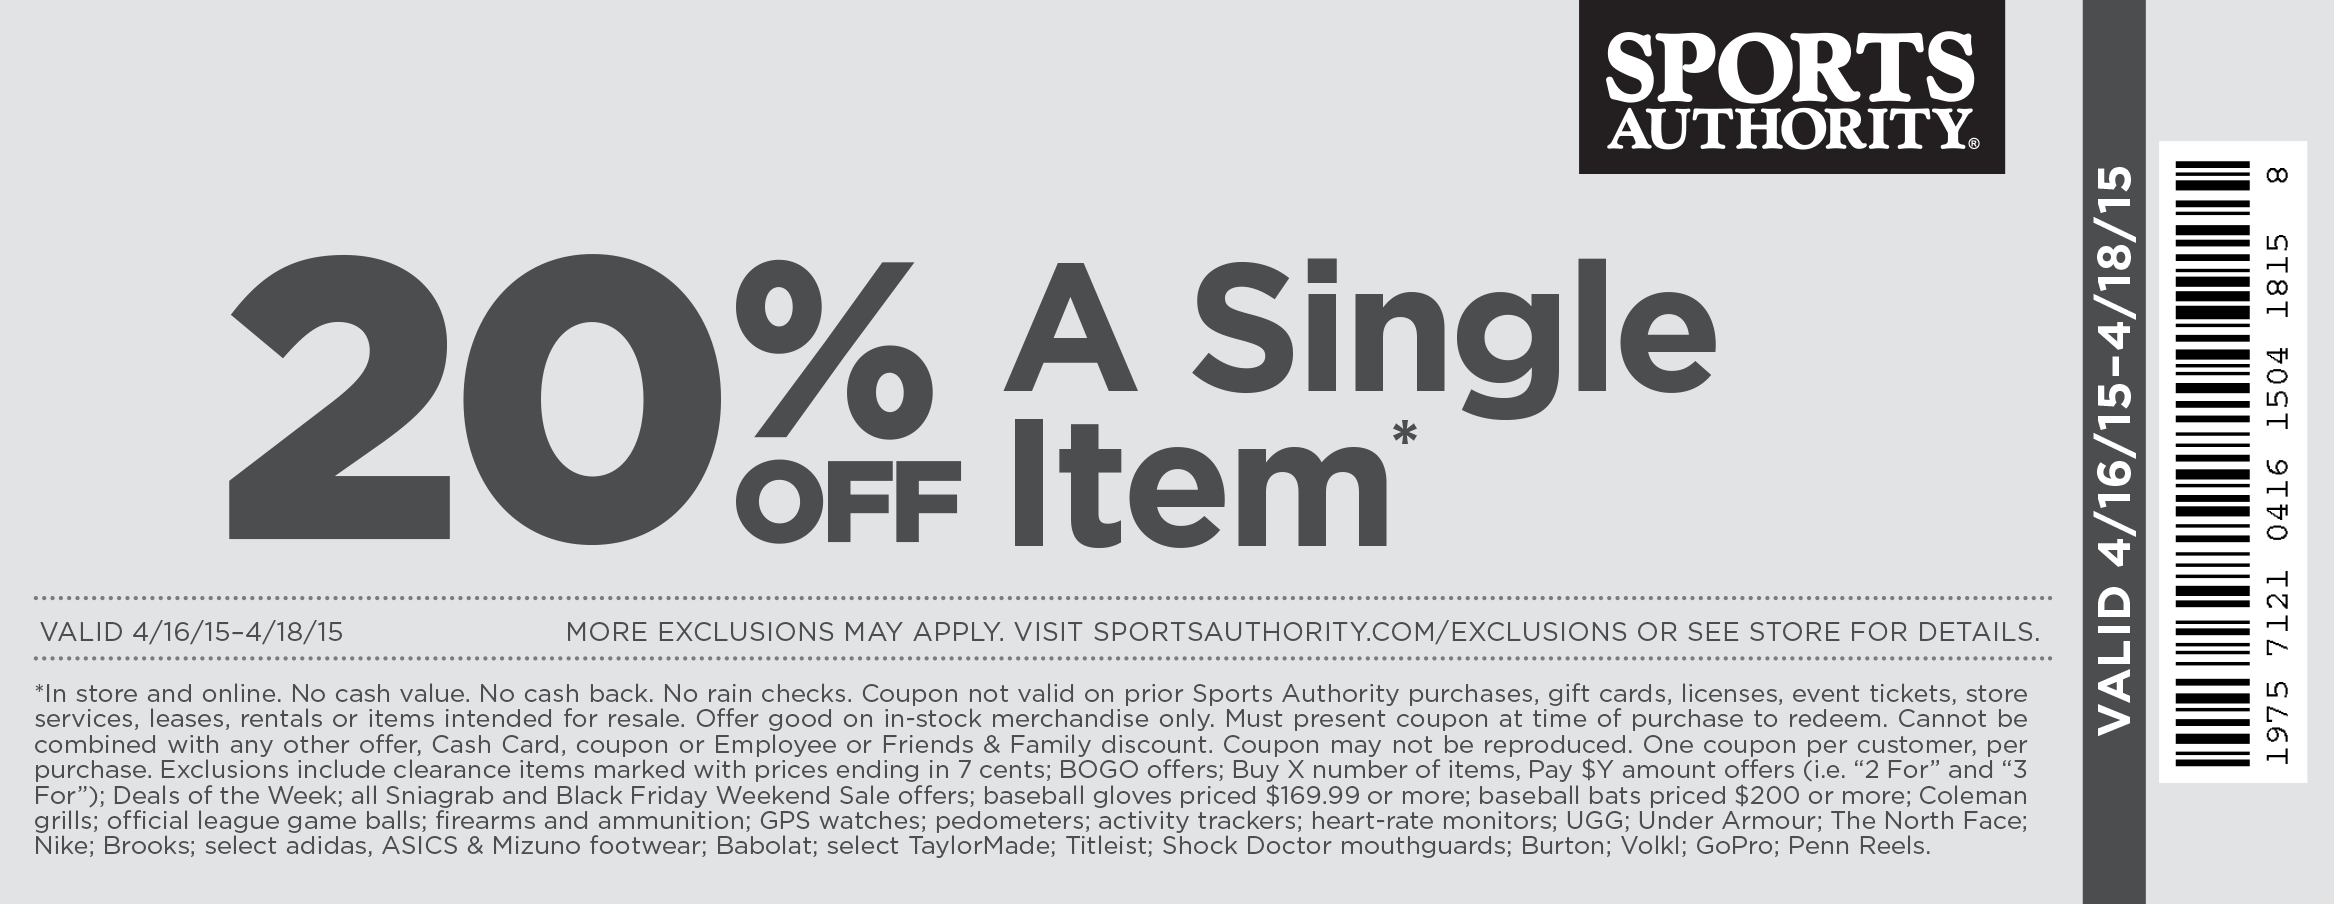 Sports Authority Coupon July 2018 20% off a single item at Sports Authority, also online